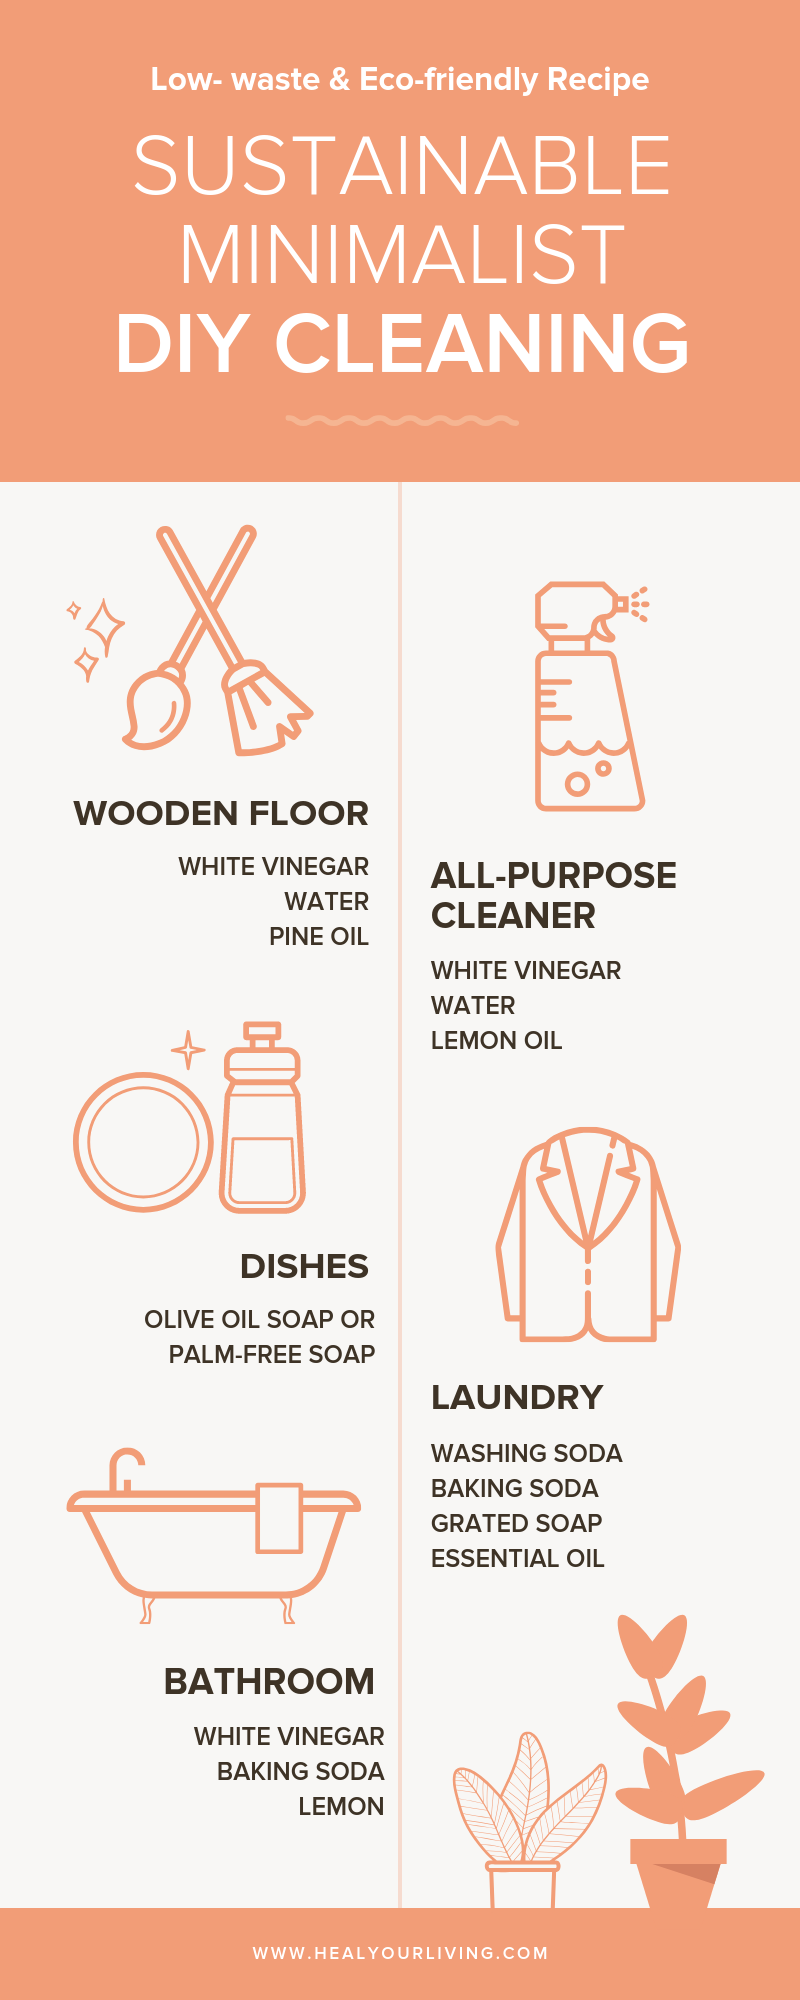 sustainable minimalist eco-friendly chemical-free cleaning products diy homemade recipe.png